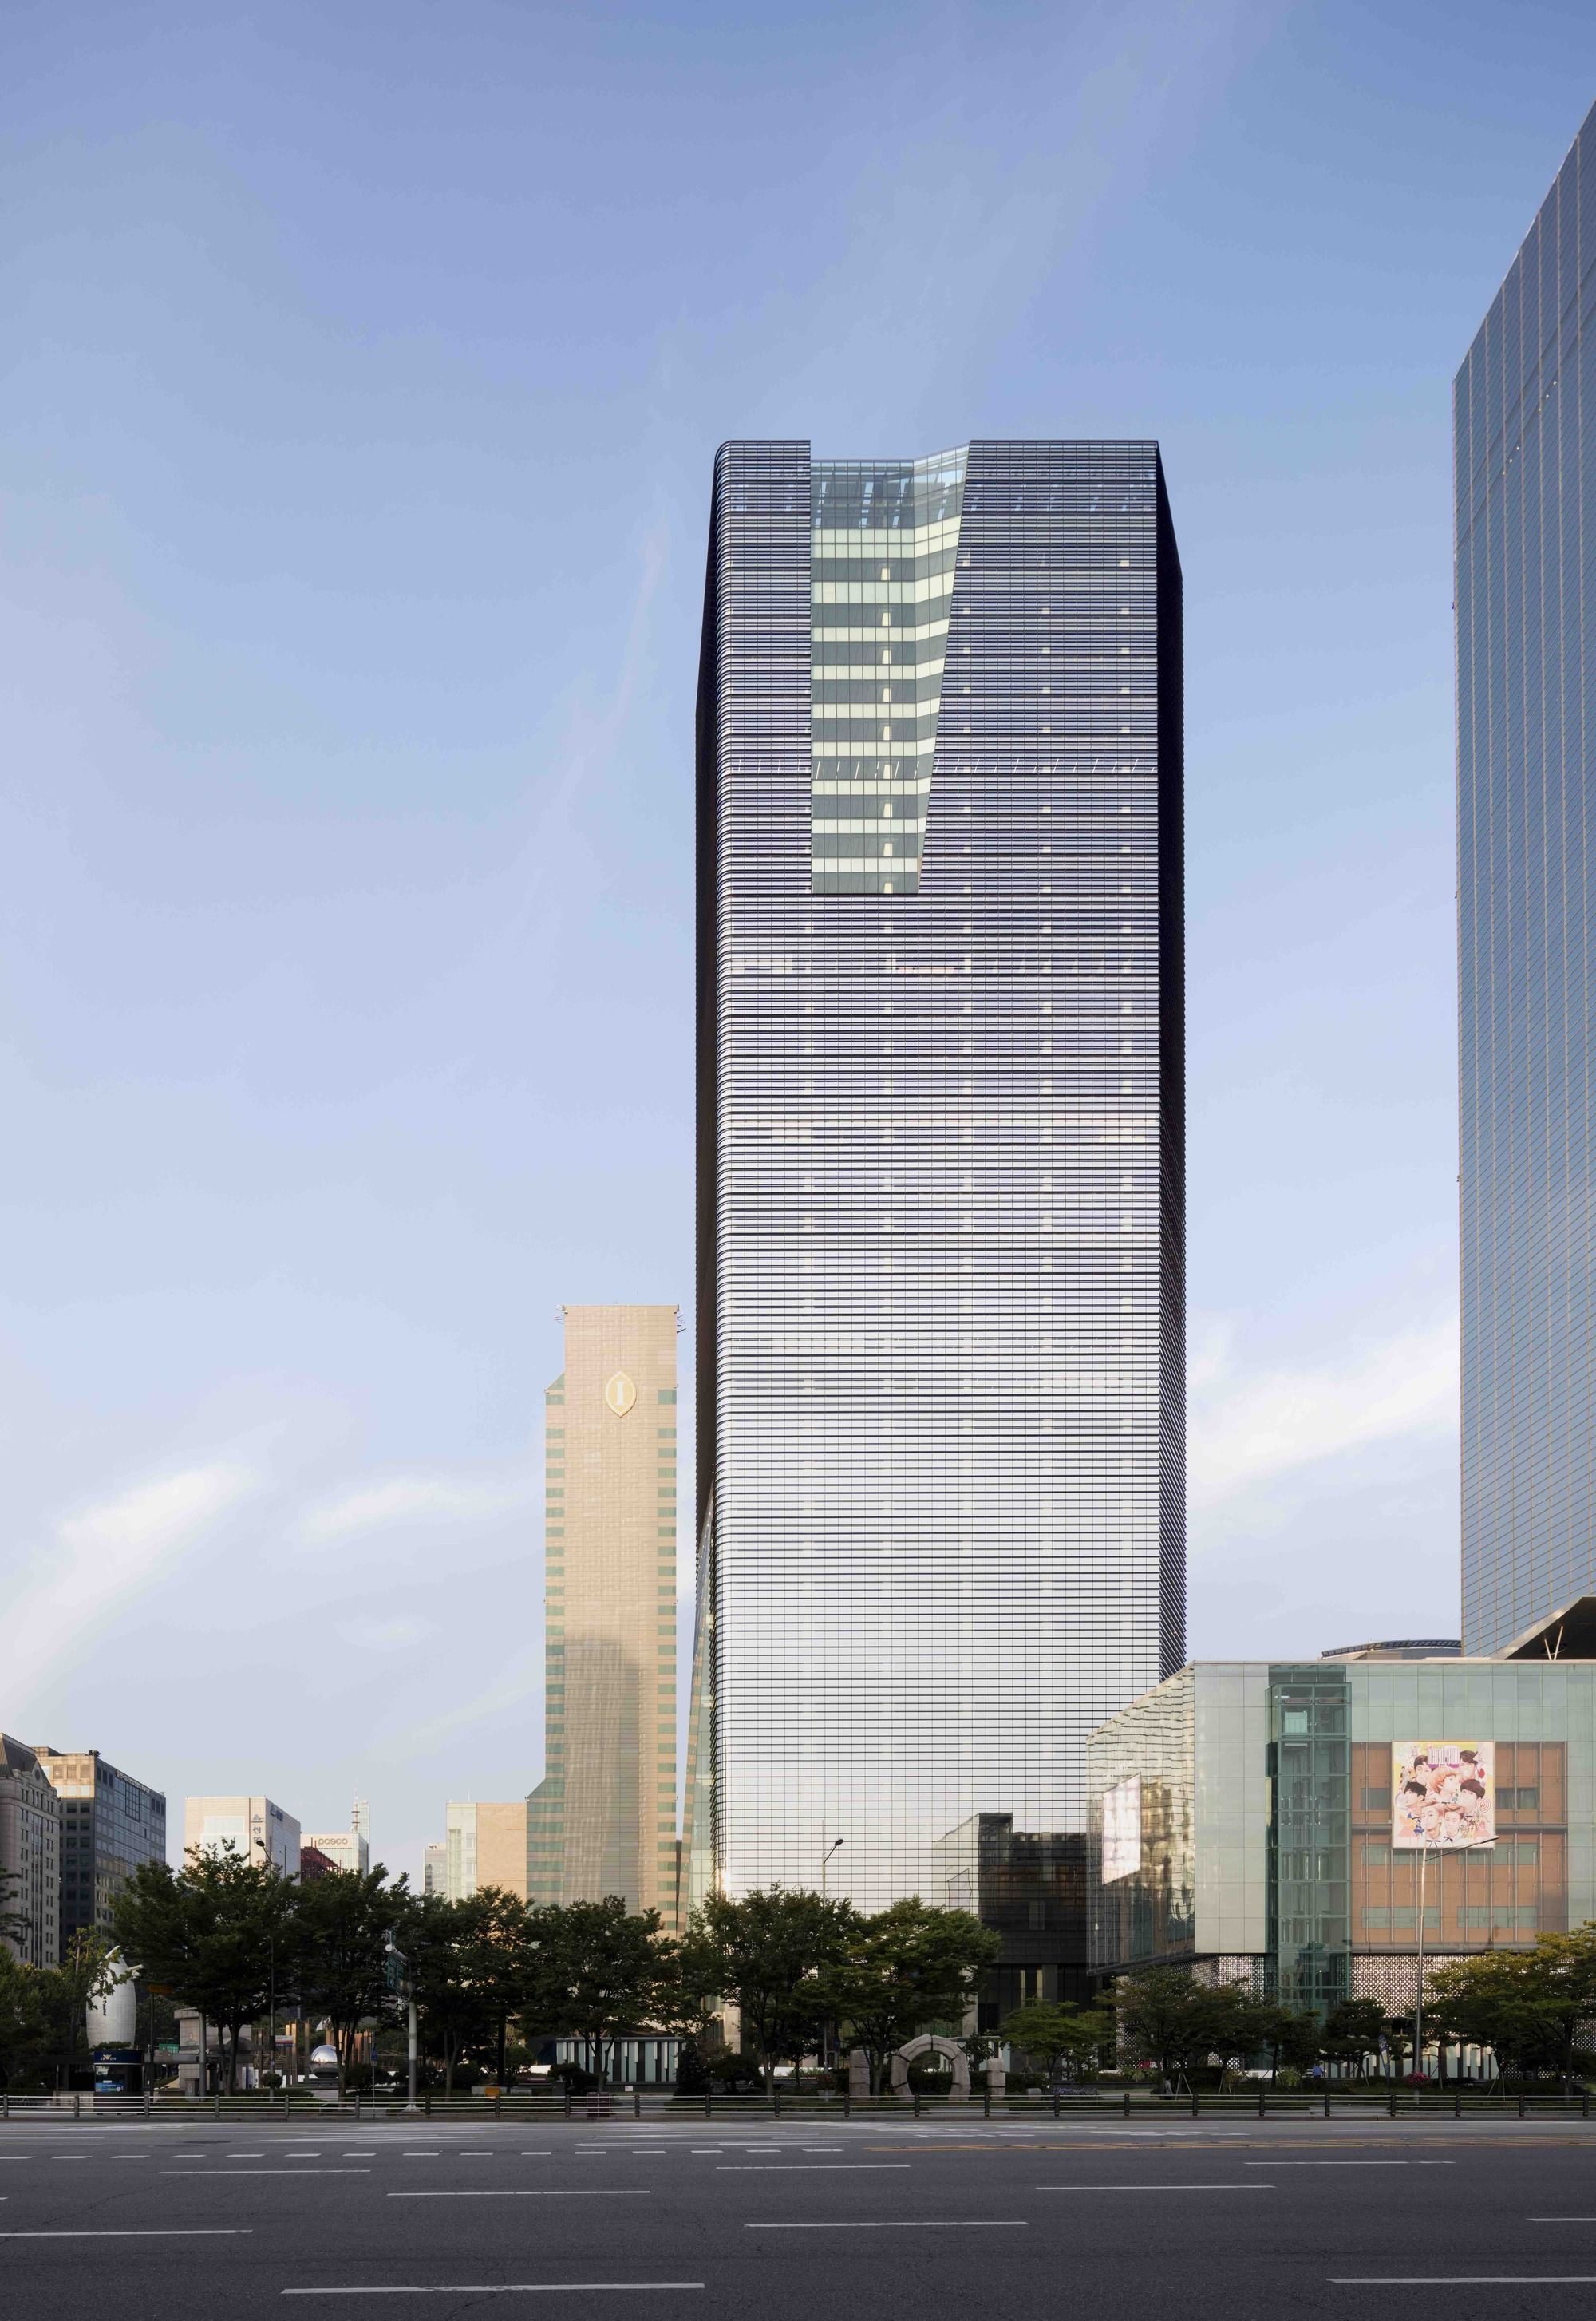 Parnas Tower Chang Jo Architects Facade Architecture Skyscraper Architecture Architect